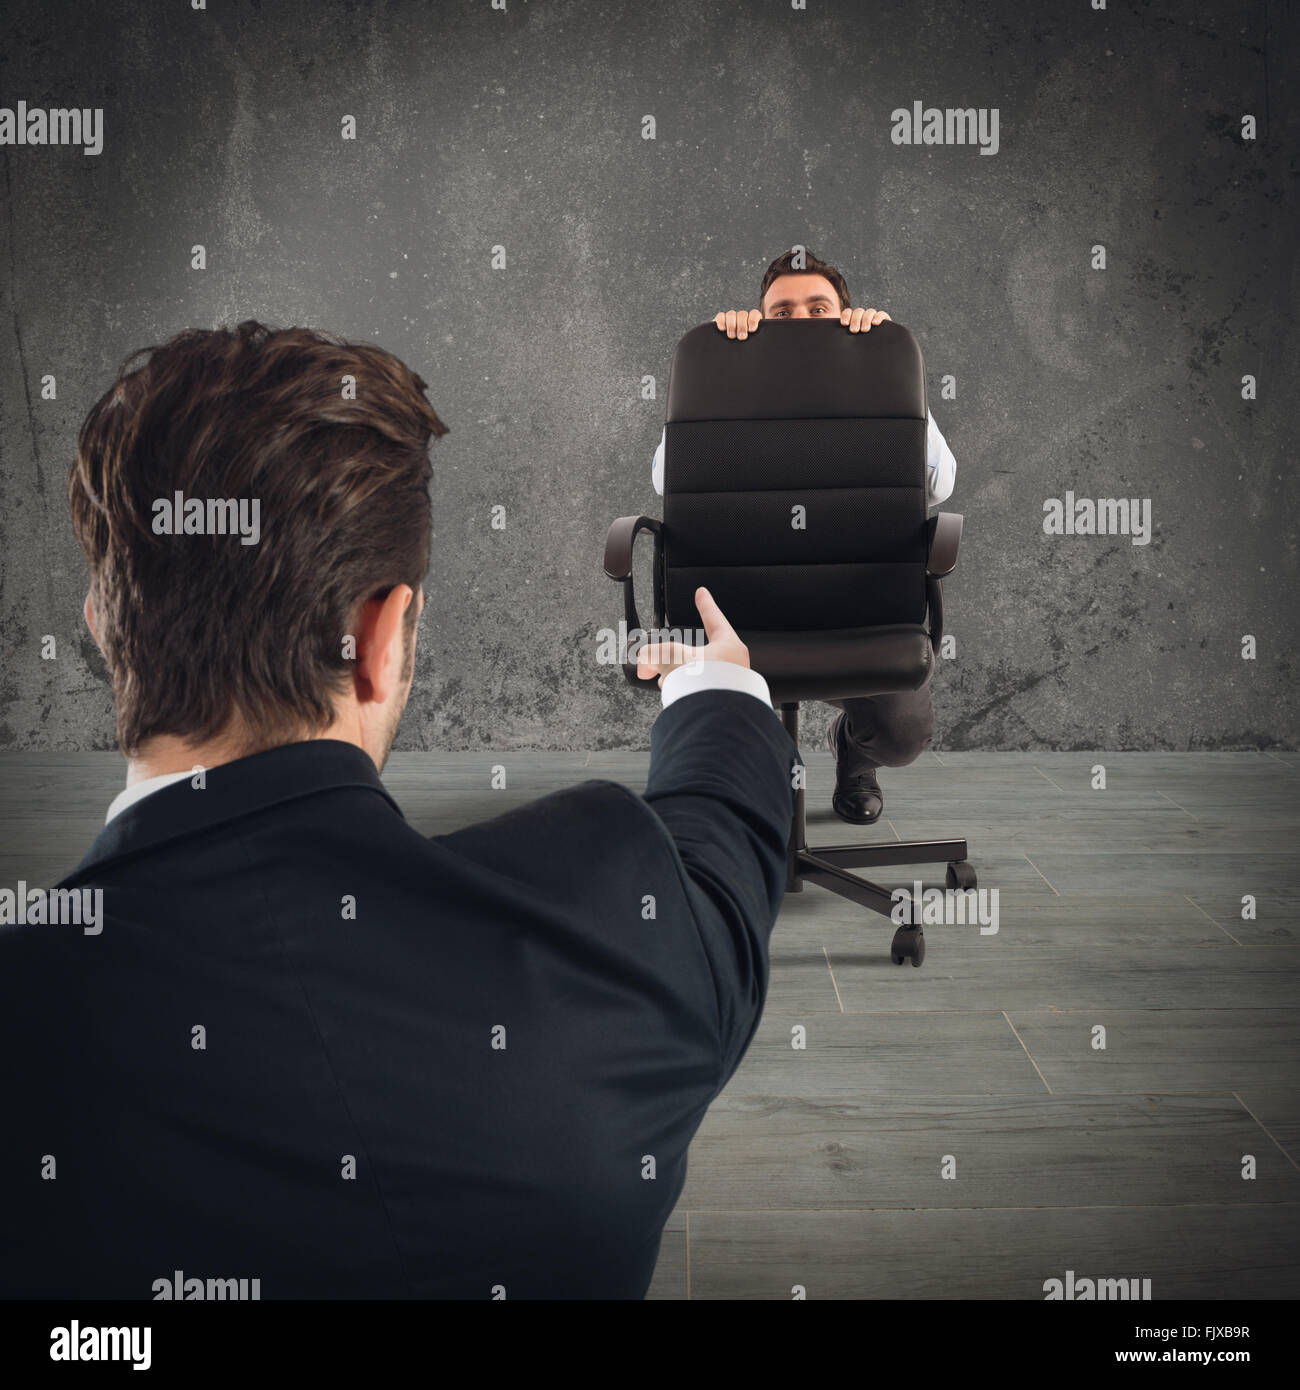 Fired afraid employee - Stock Image